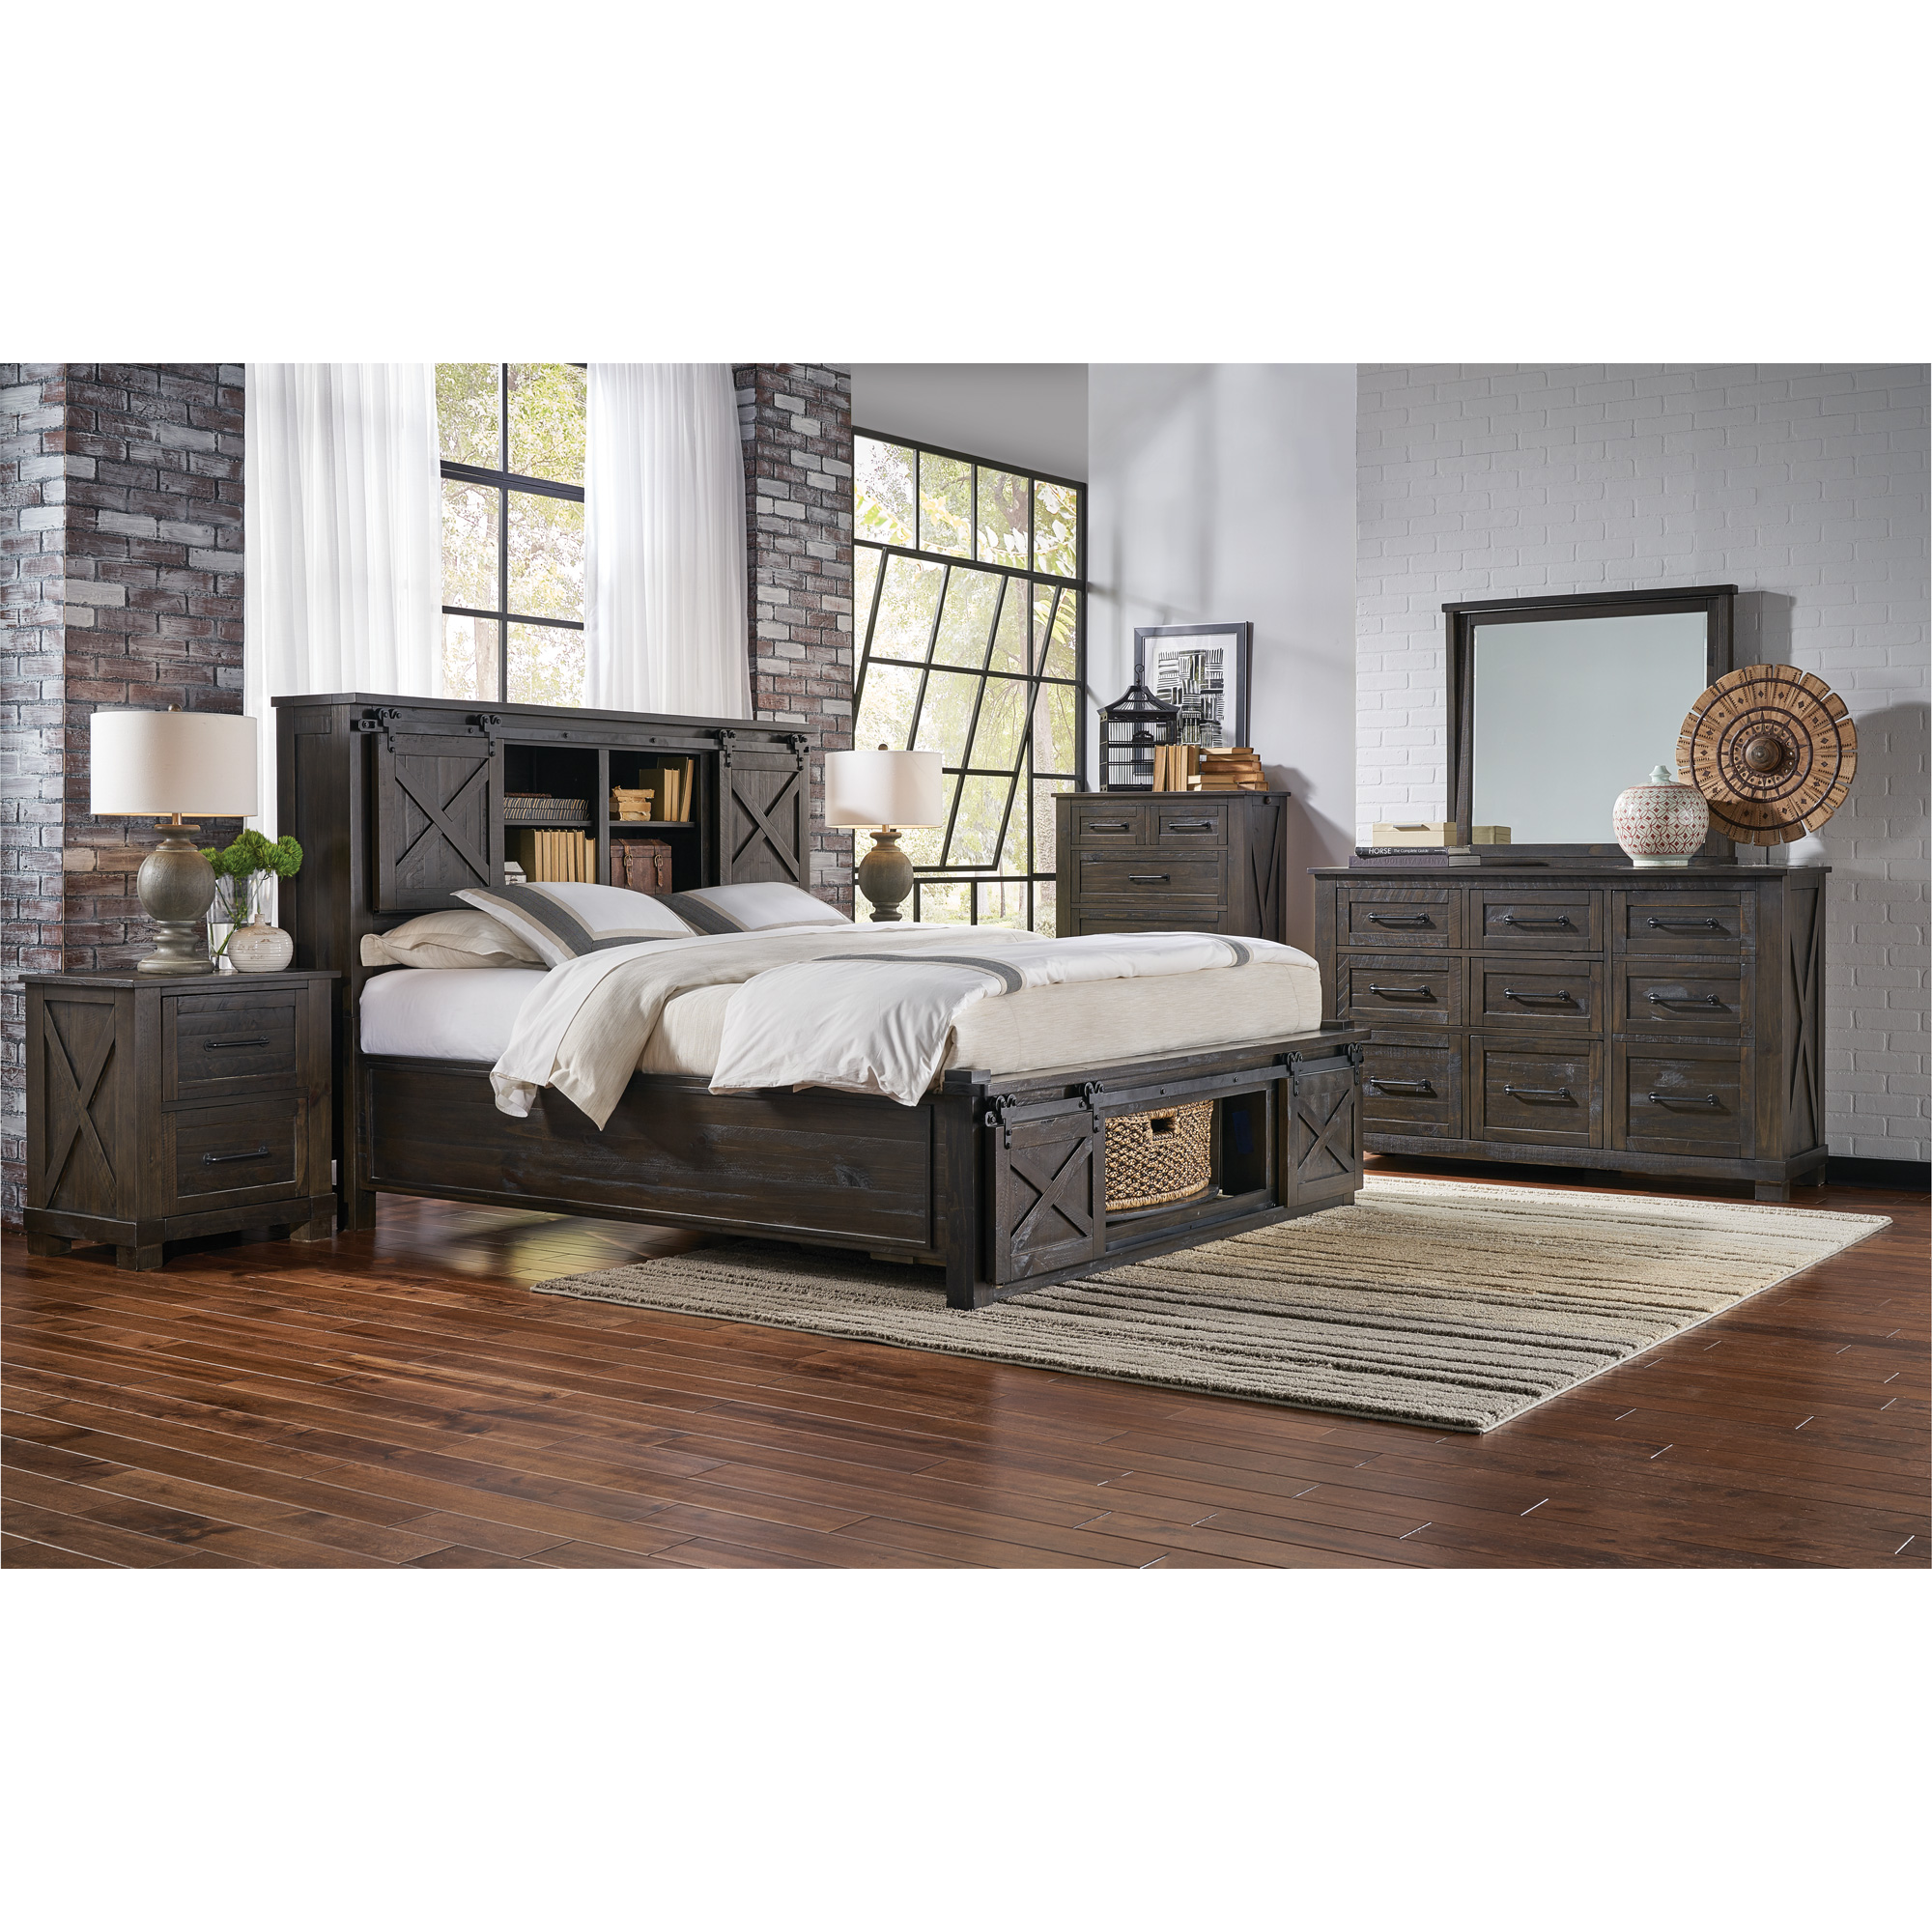 America | Sun Valley Charcoal King Rotating Storage 4 Piece Room Group Bedroom Set